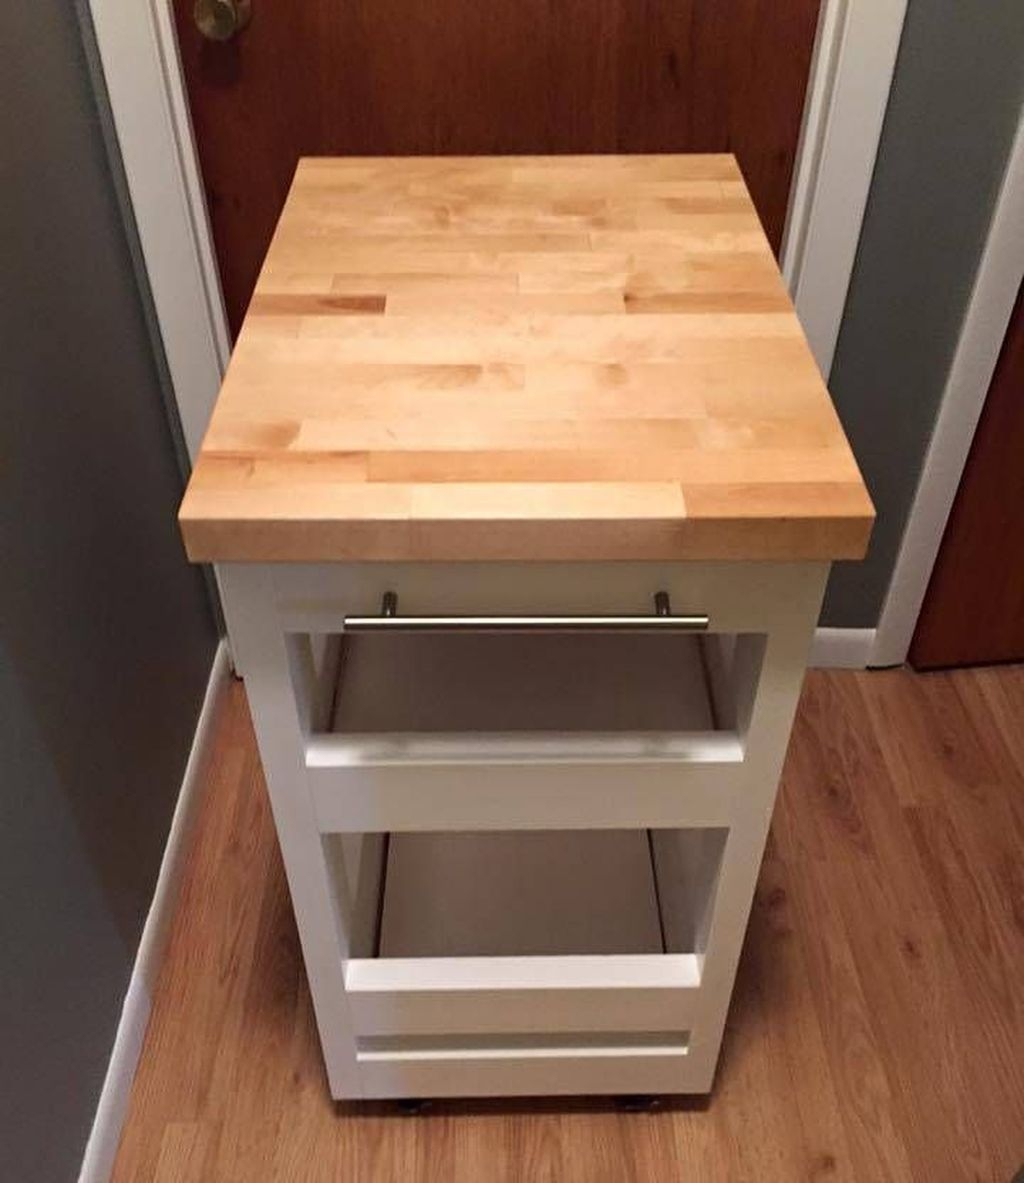 Incredible Diy Kitchen Pallets Ideas You Need To See Today 02